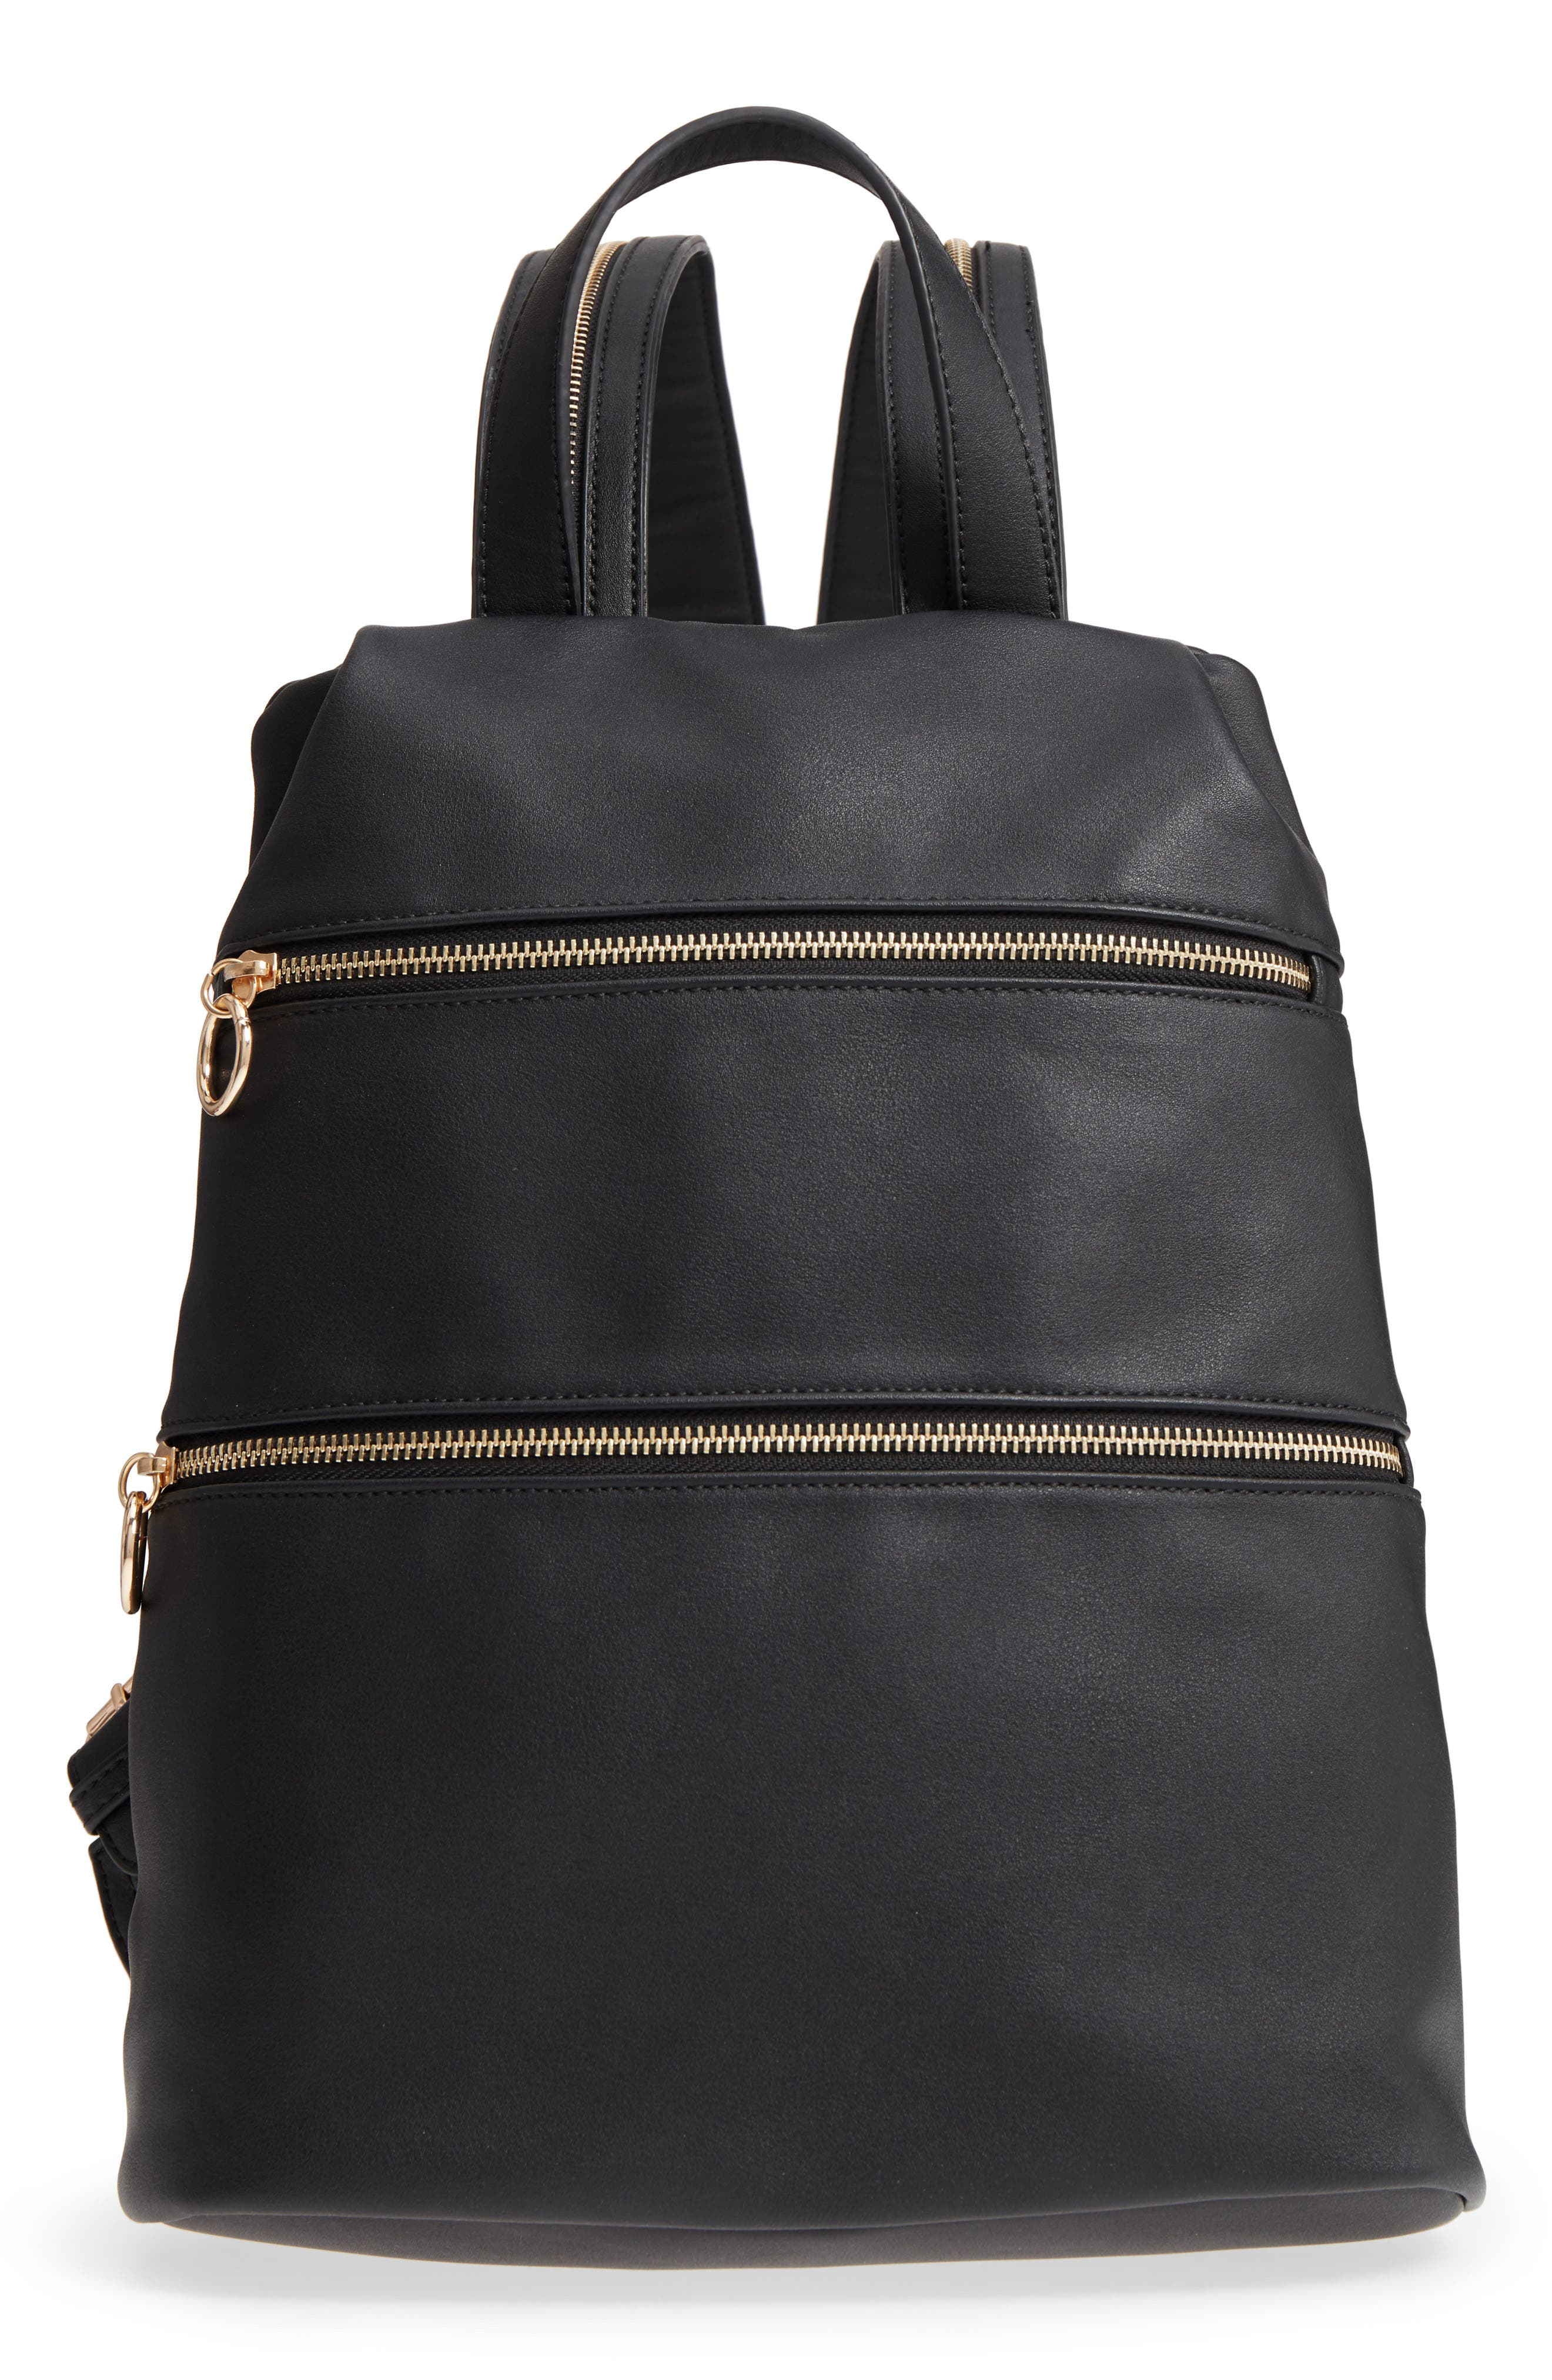 Double Zip O Ring Faux Leather Backpack,                             Main thumbnail 1, color,                             Black